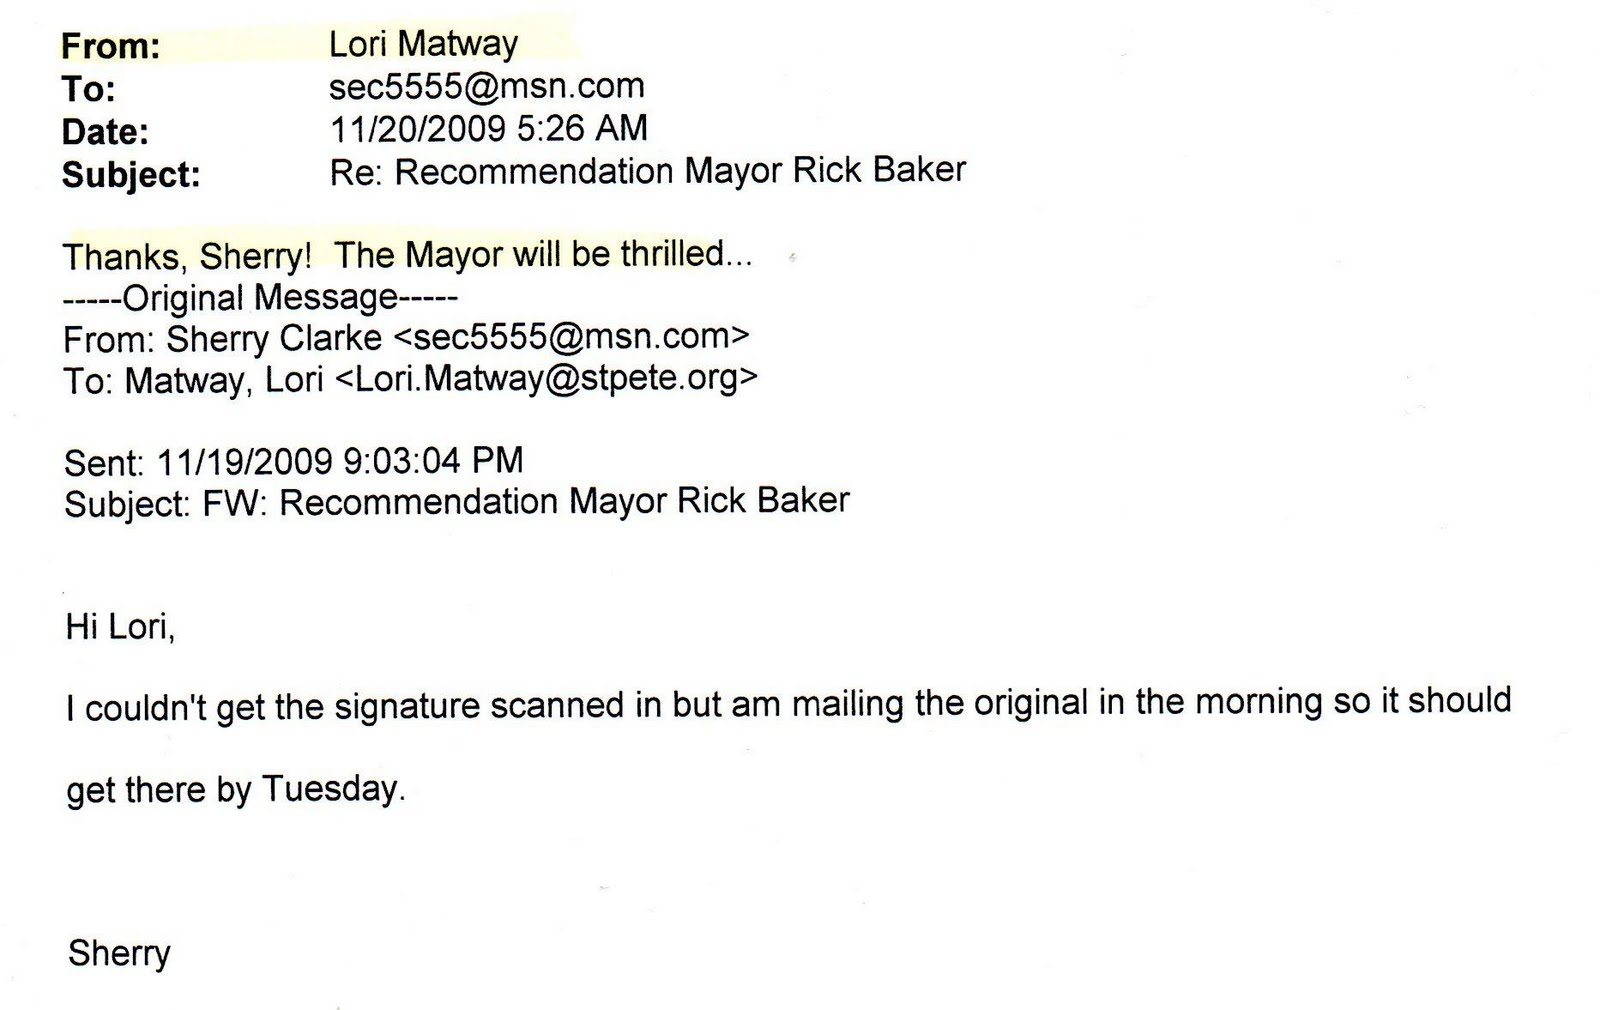 mails confirm city hall administrator is coordinating letter writing